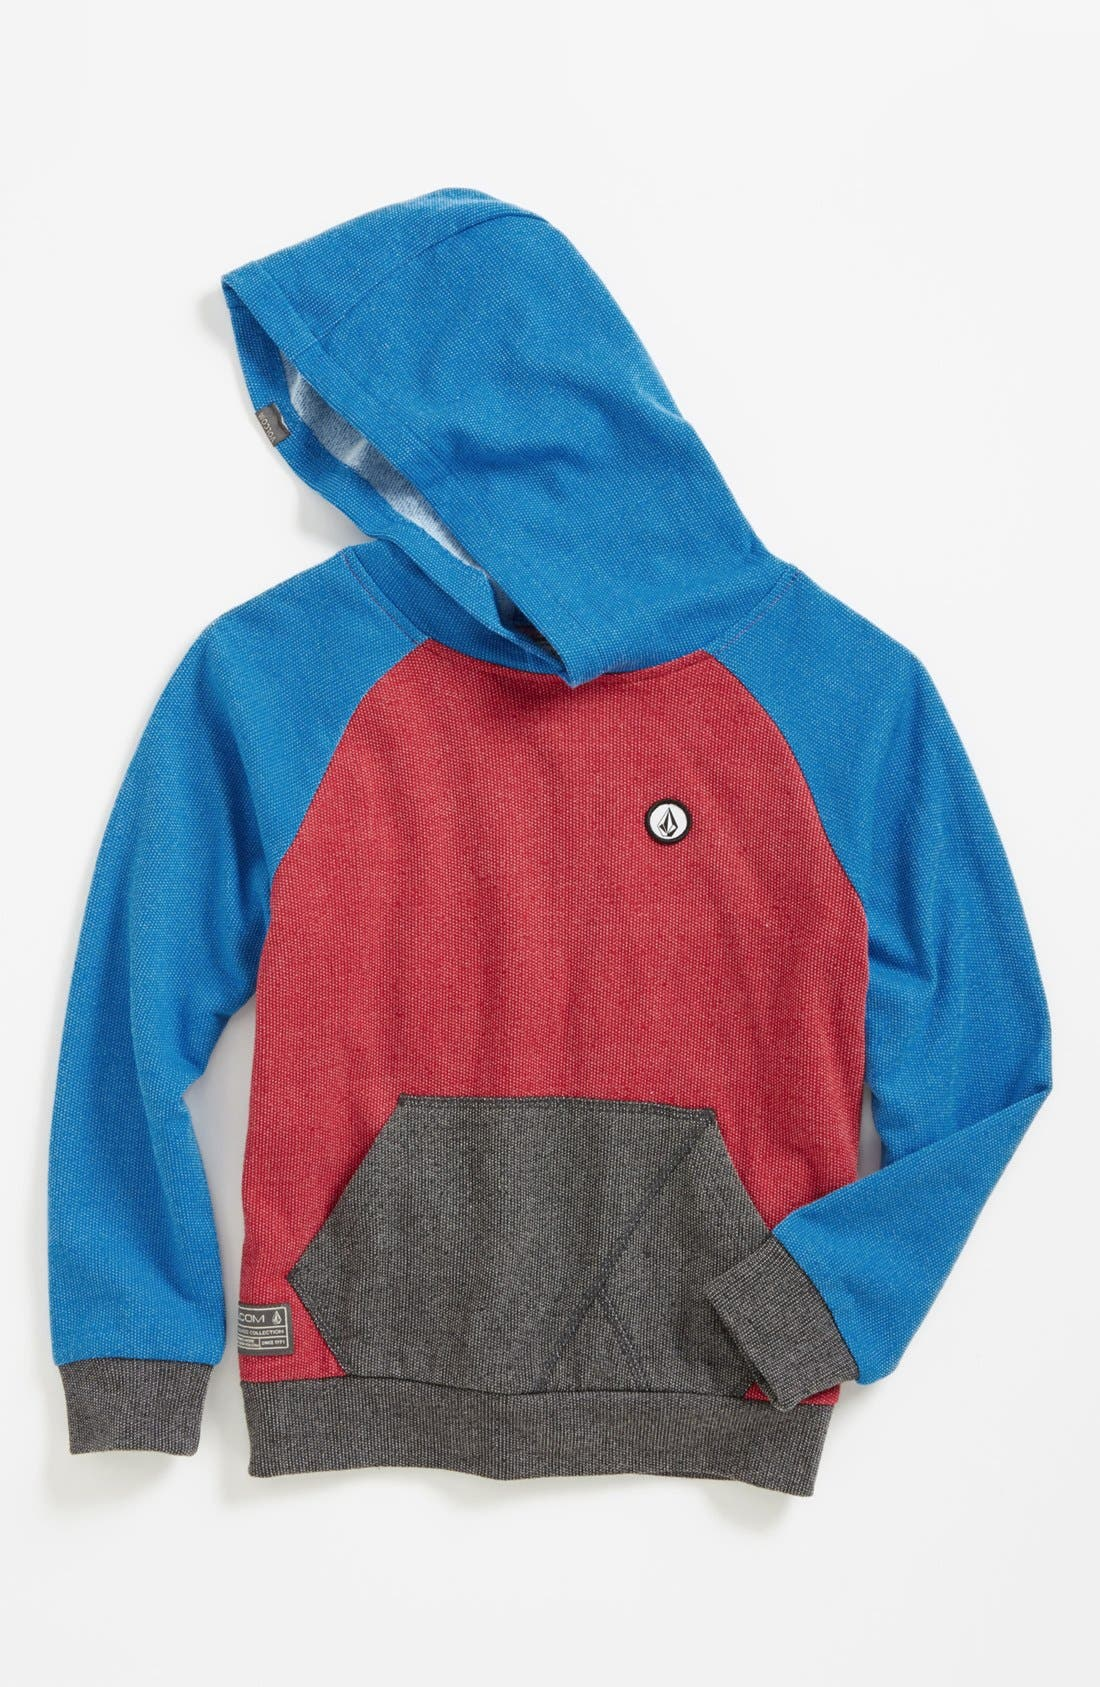 Main Image - Volcom 'Stone' Colorblock Pullover Hoodie (Toddler Boys)